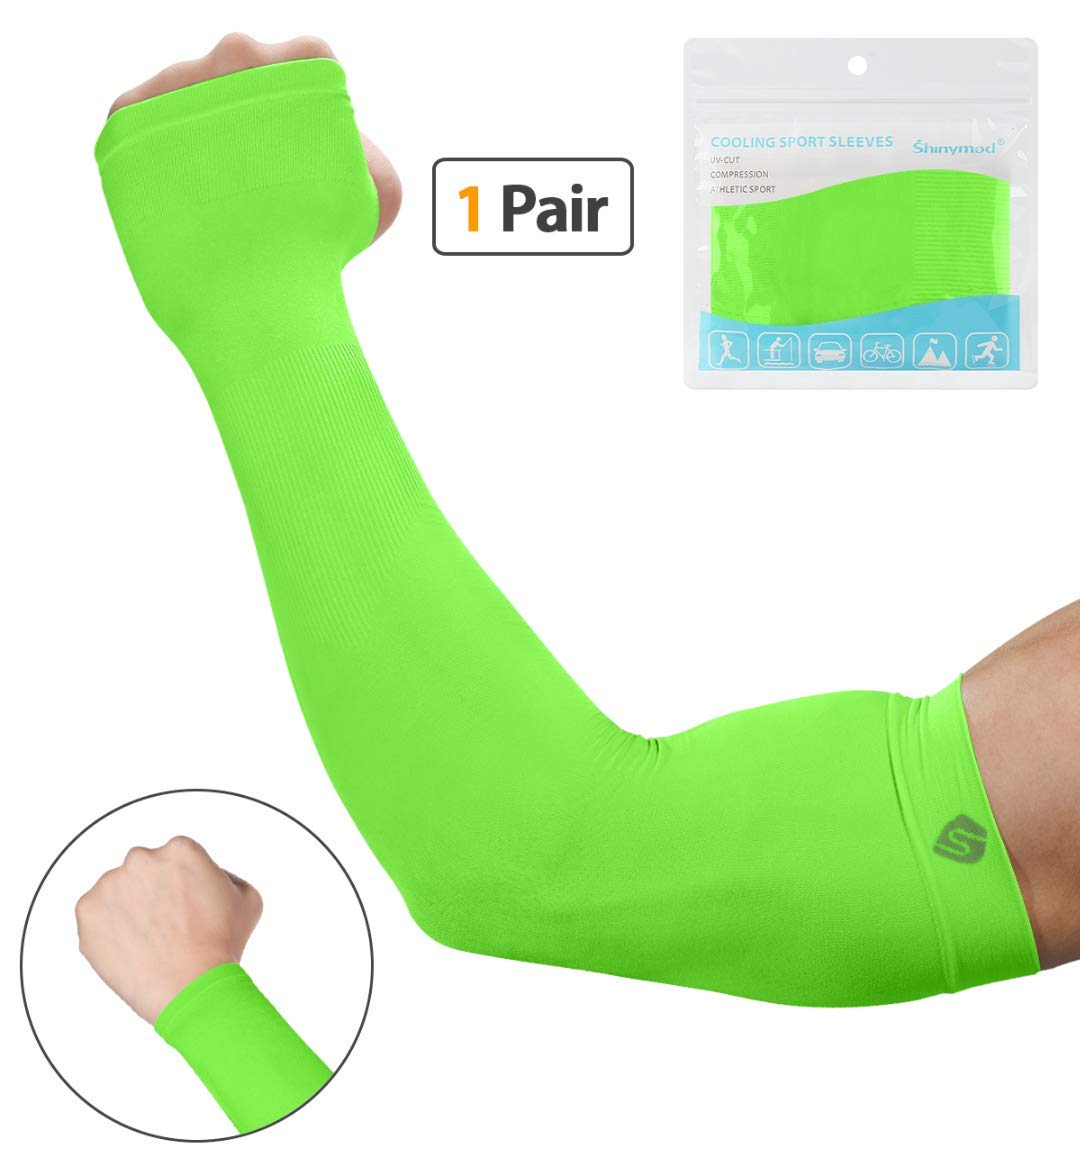 SHINYMOD UV Protection Cooling Arm Sleeves Men Women Sunblock Cooler Protective Sports Running Golf Cycling Basketball Driving Fishing Long Arm Cover Sleeves by SHINYMOD